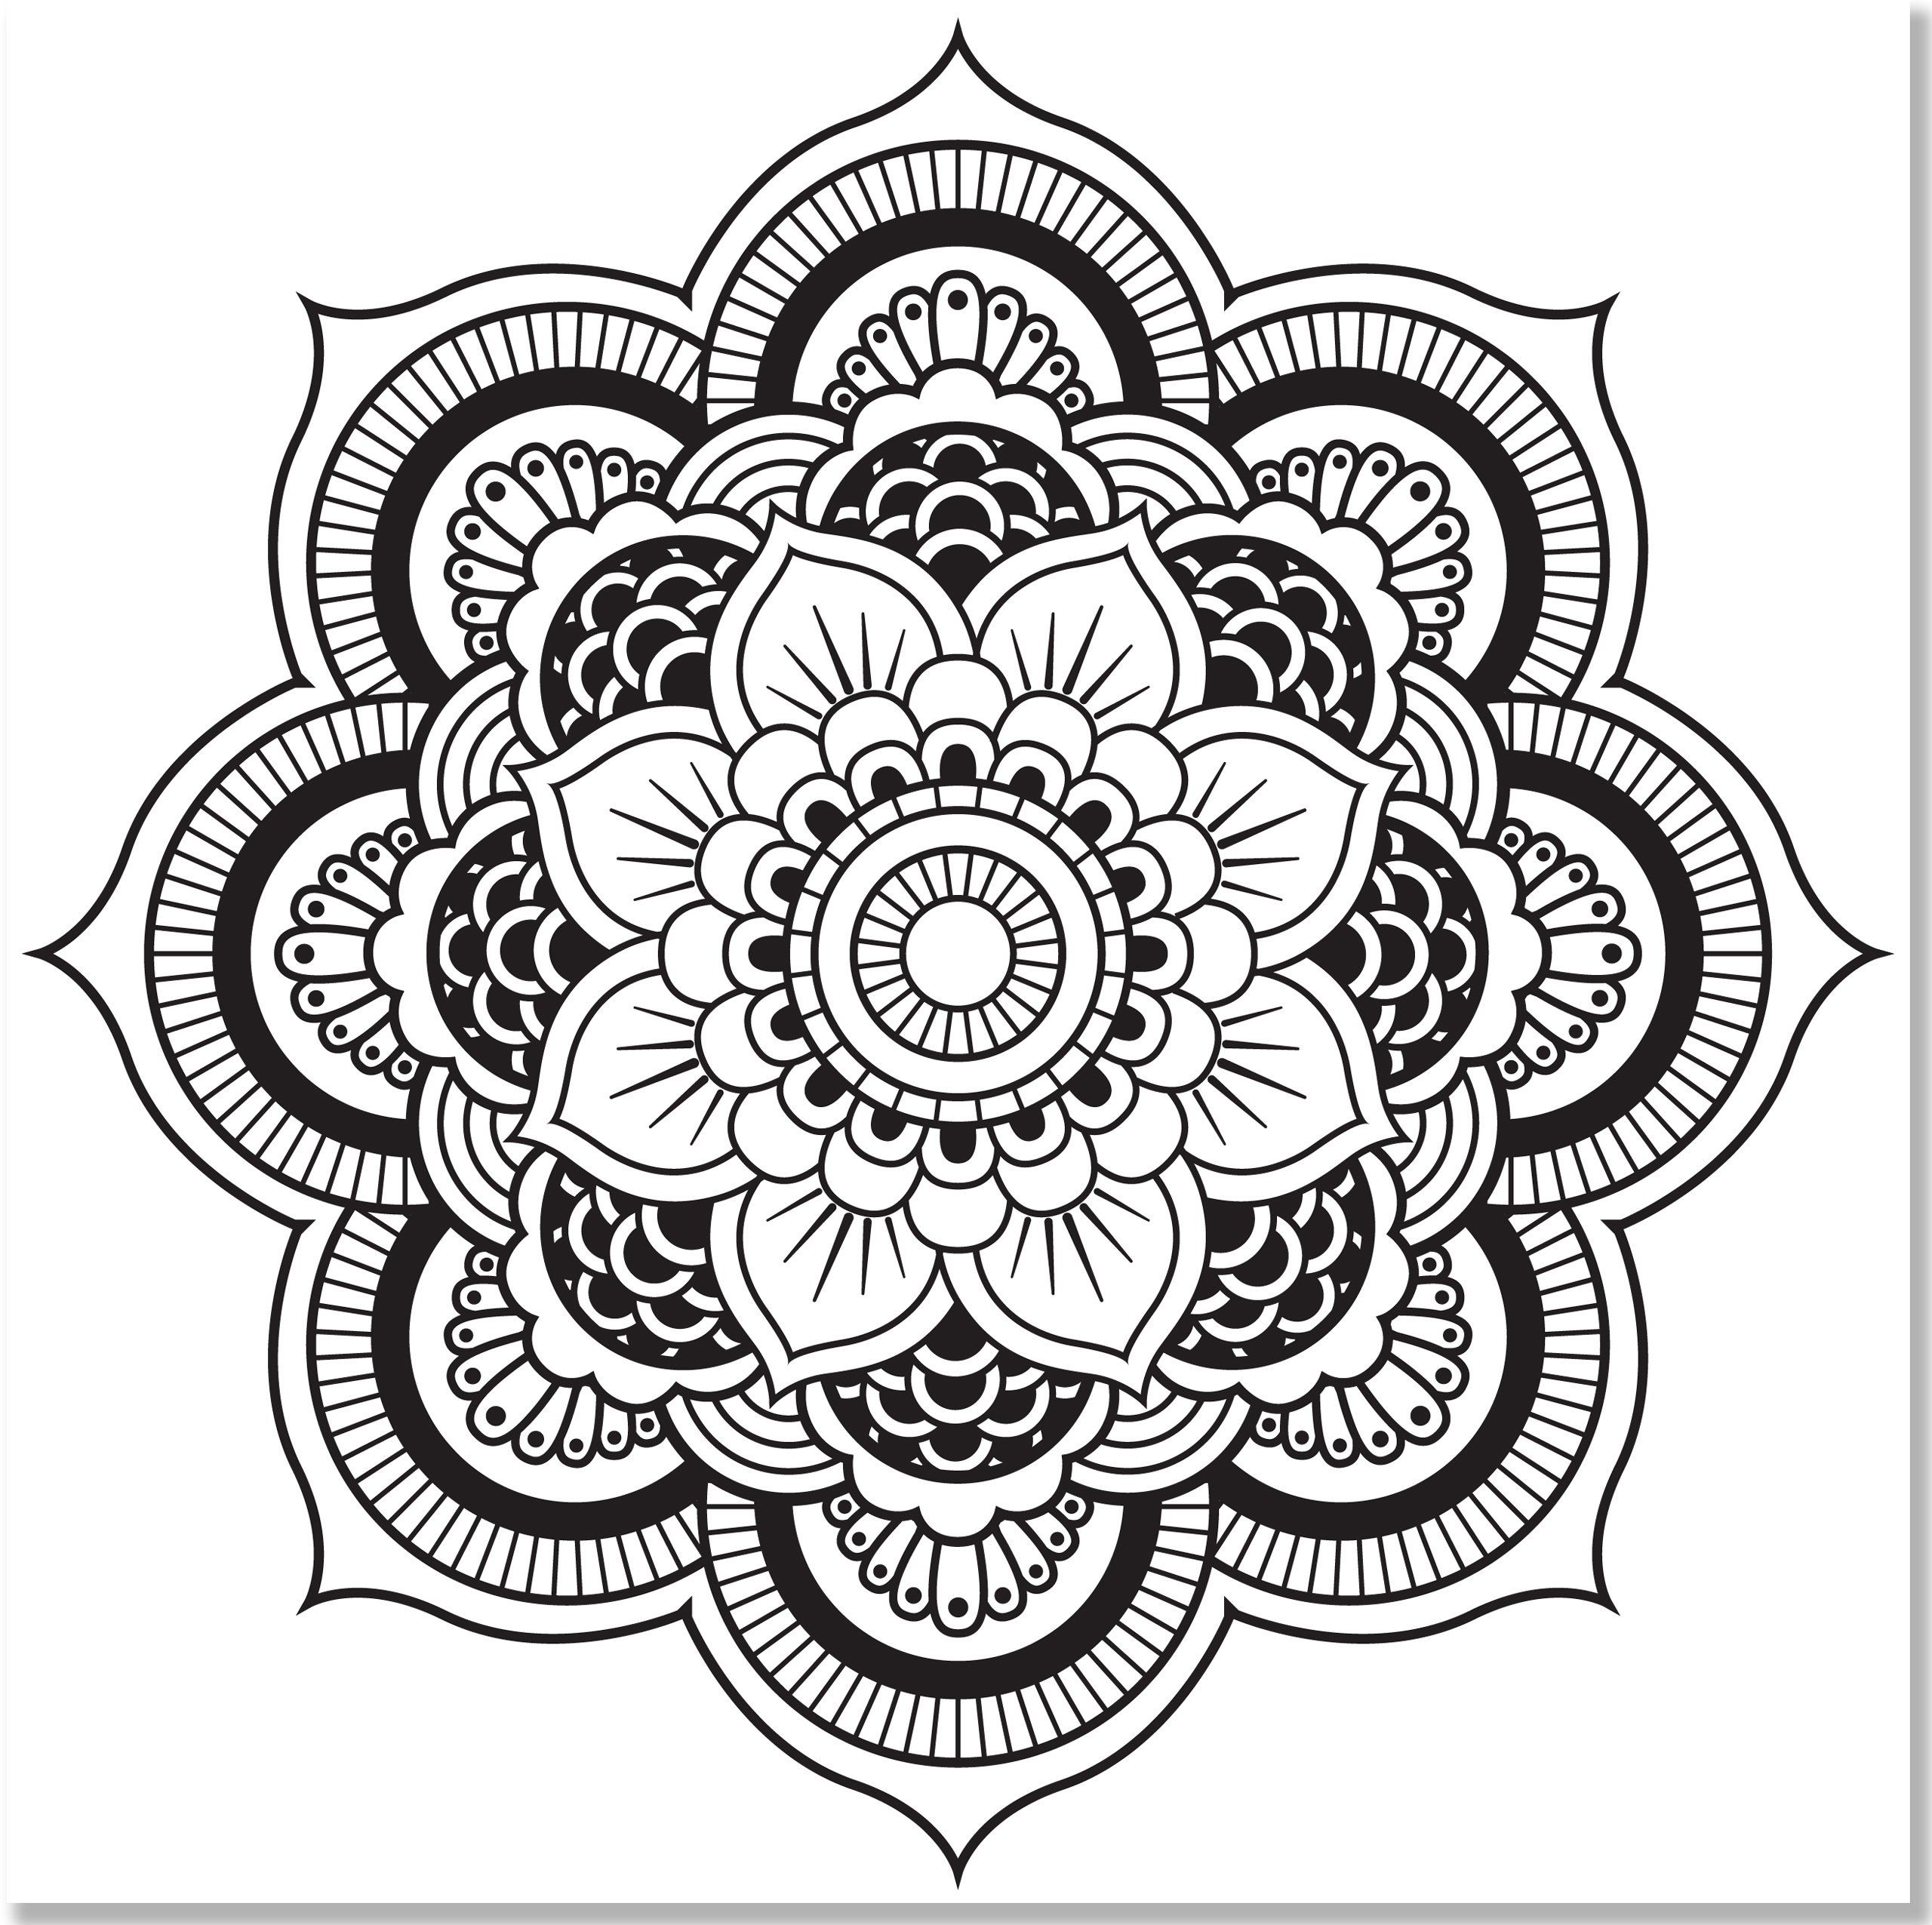 Amazoncom Adult Coloring Book Value Pack Kaleidoscope Mandala